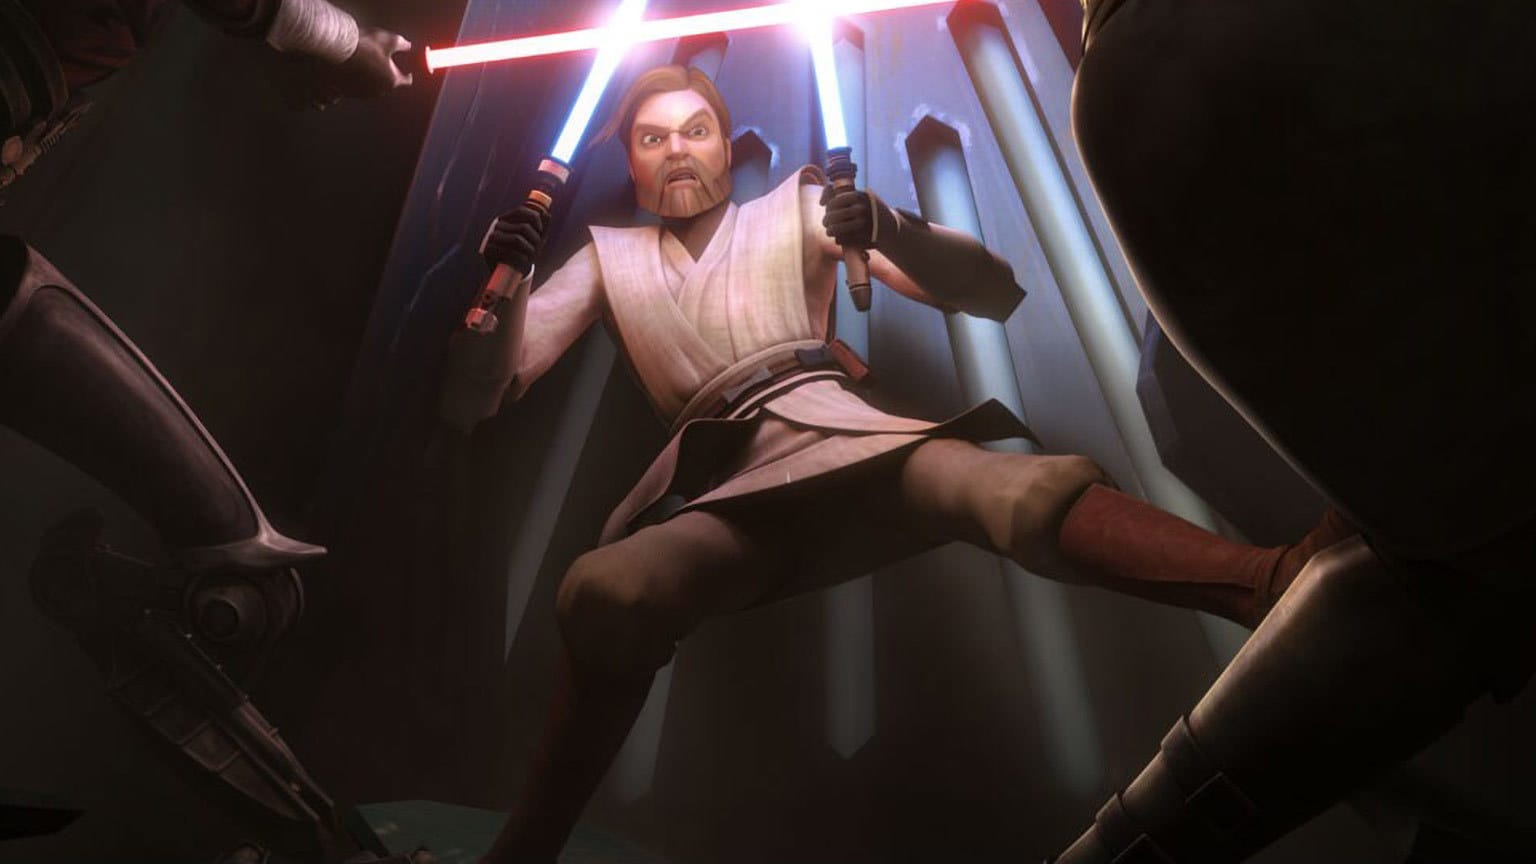 """The Clone Wars Rewatch: """"Revival"""" of the Sith"""